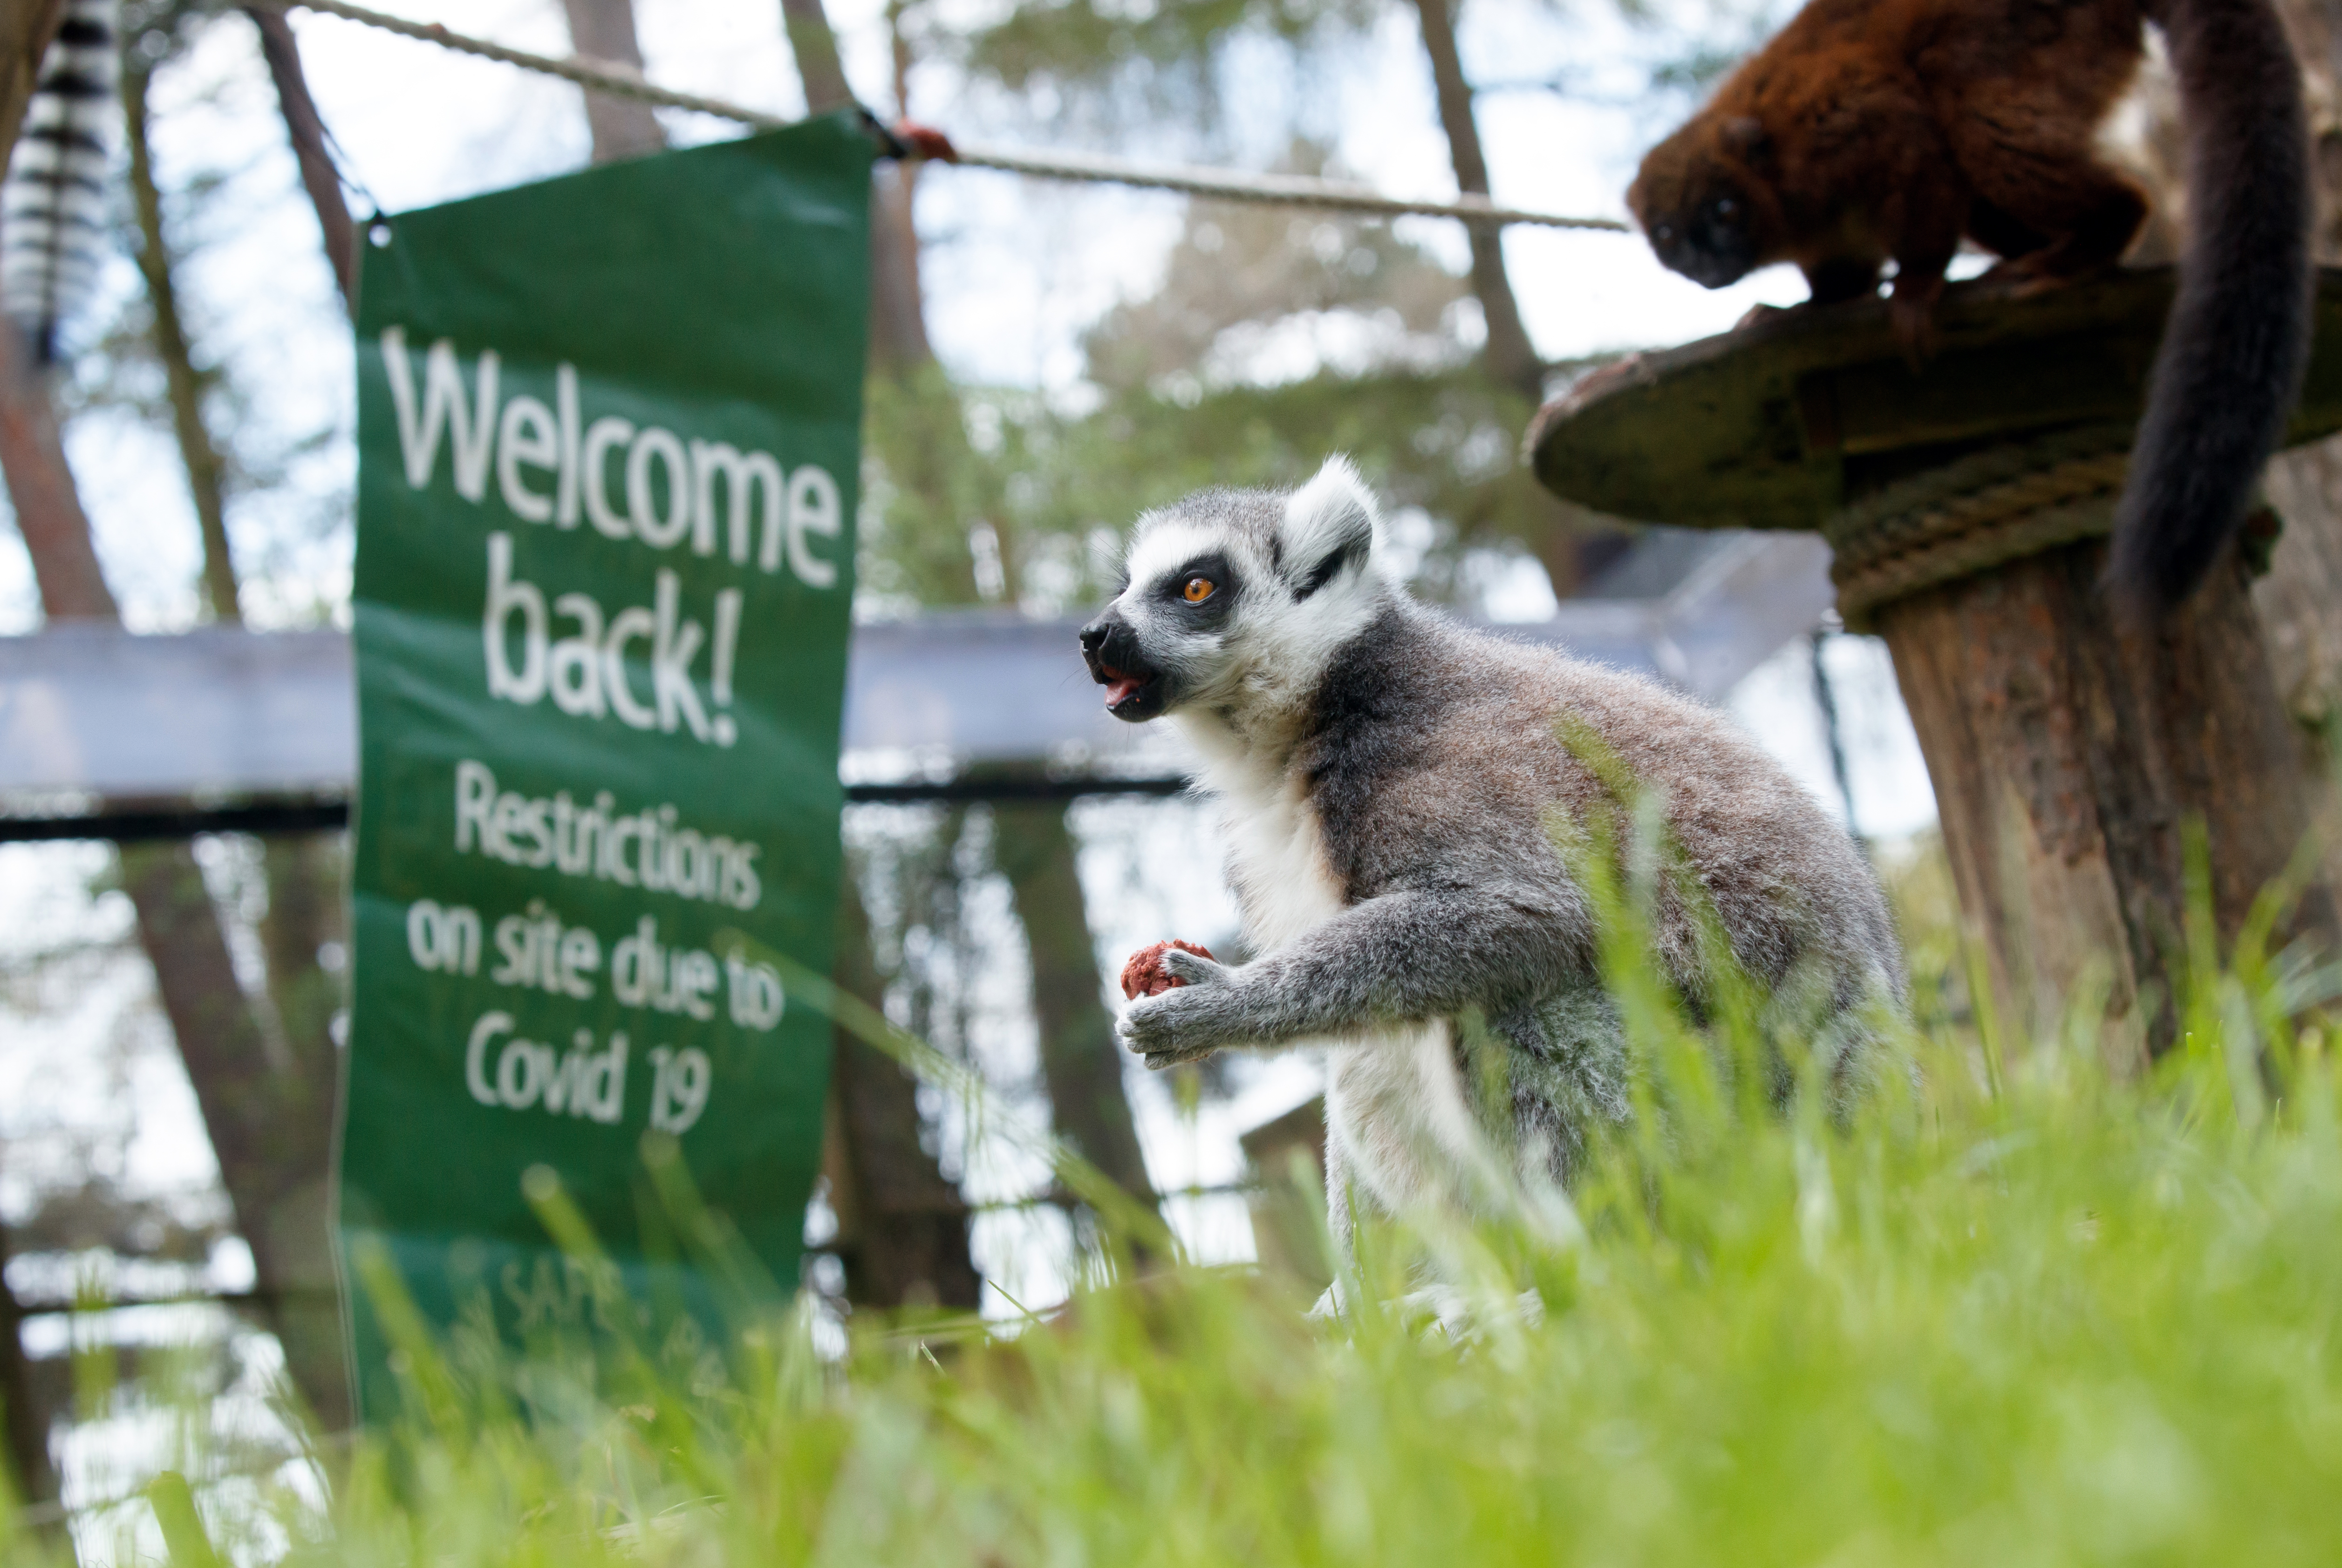 """<p>A Lemur near a """"welcome back"""" sign at Yorkshire Wildlife Park, where staff are preparing the attraction ahead of reopening to the public on the 12th April when further lockdown restrictions are eased. Picture date: Wednesday April 7, 2021.</p>"""